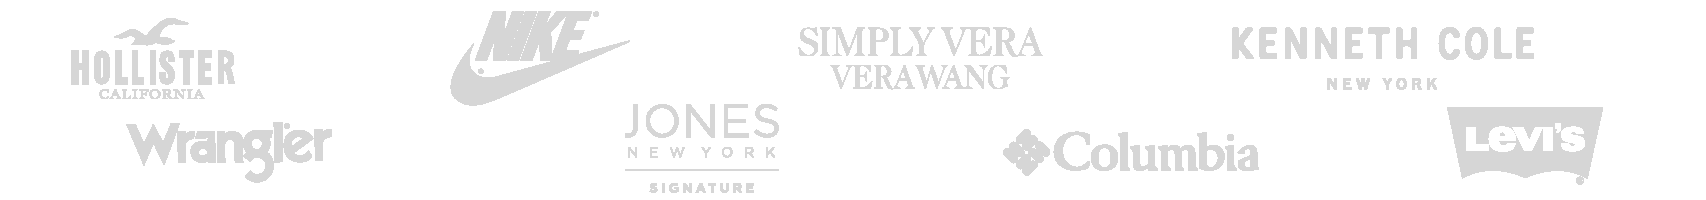 logo banner_Page_3